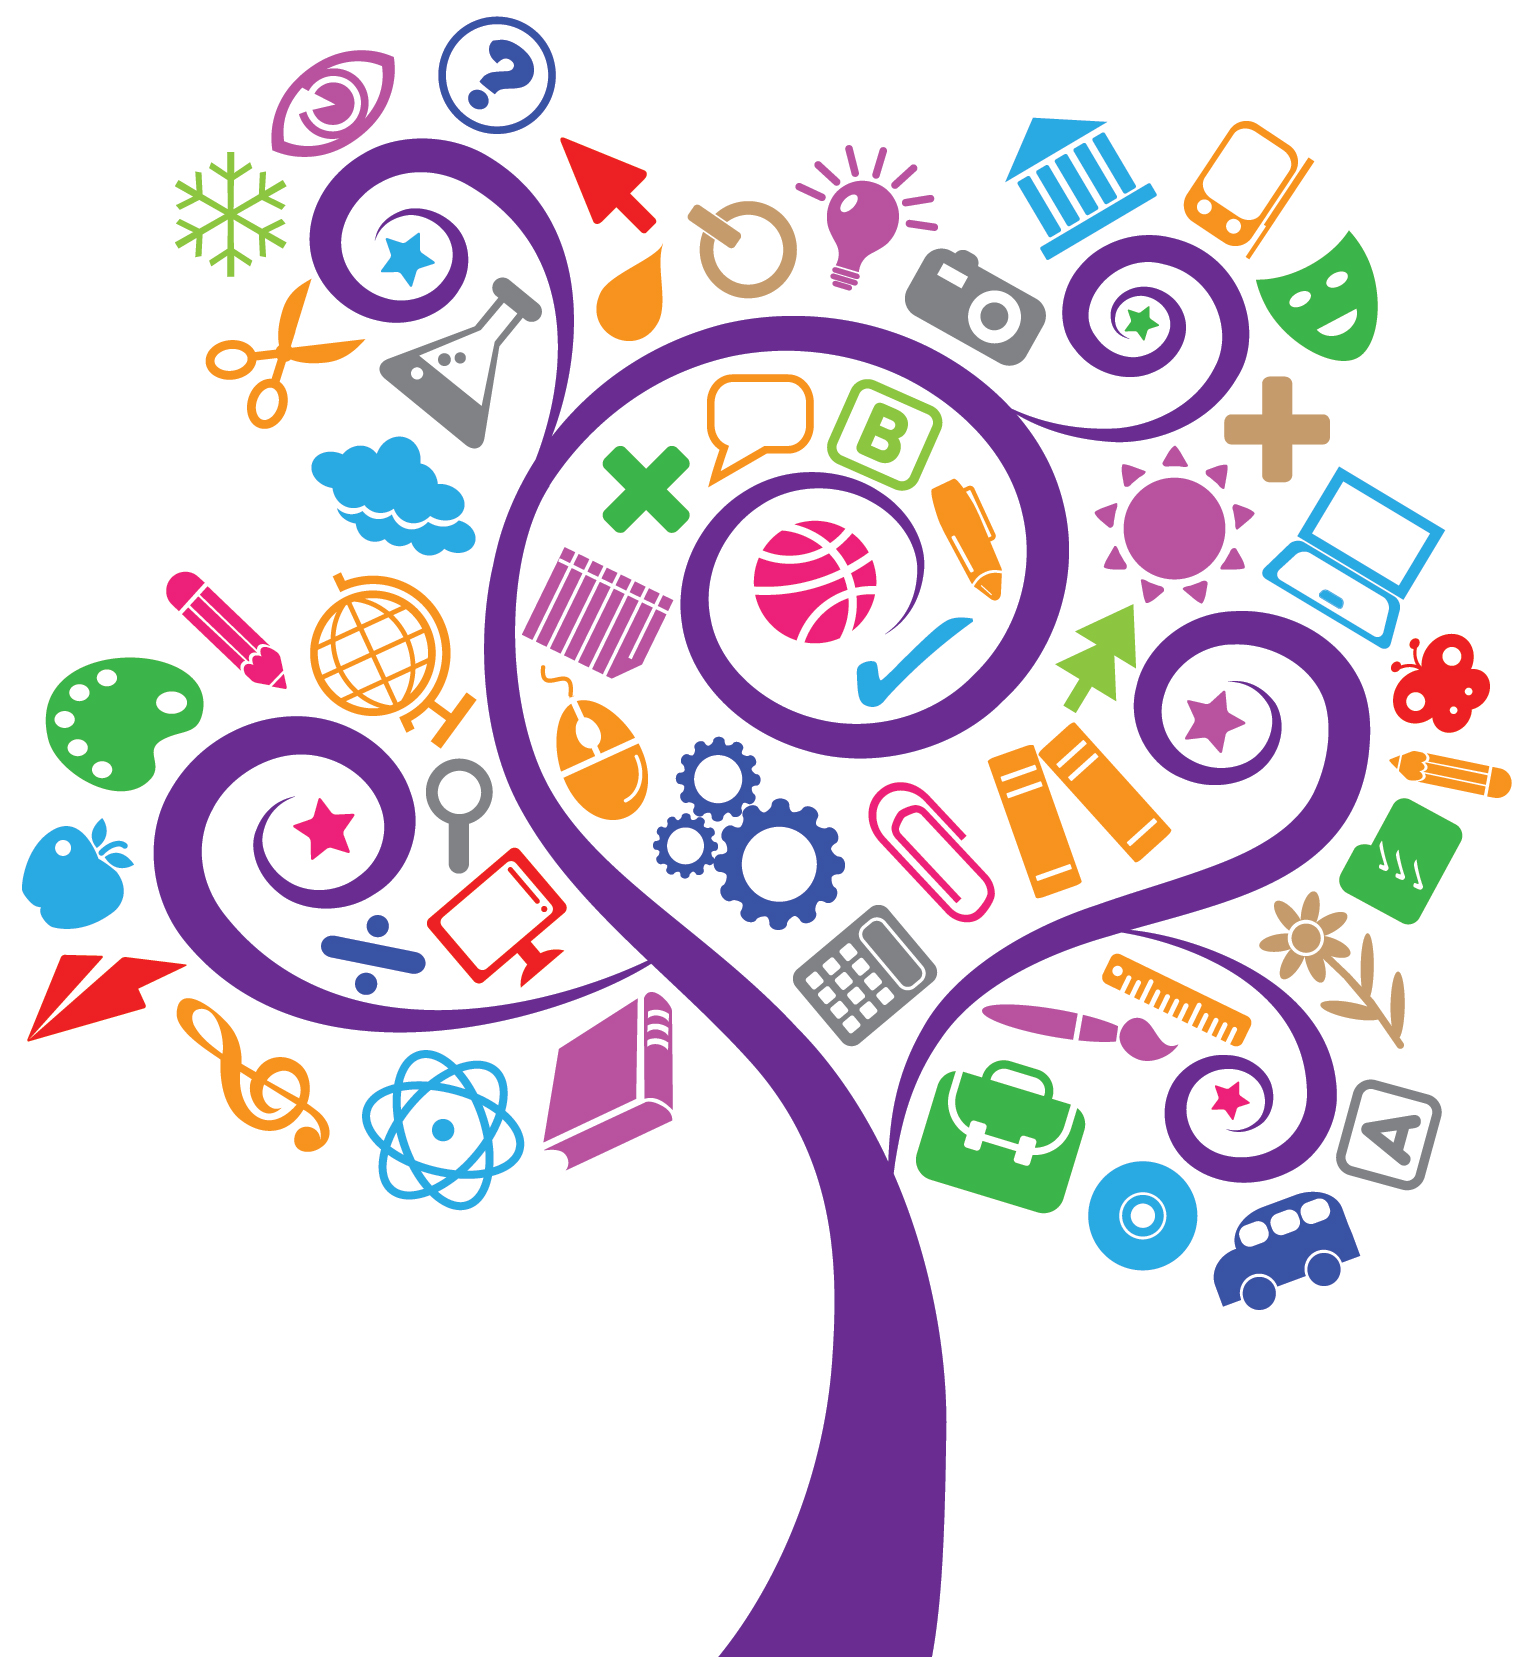 Image result for learning tree image